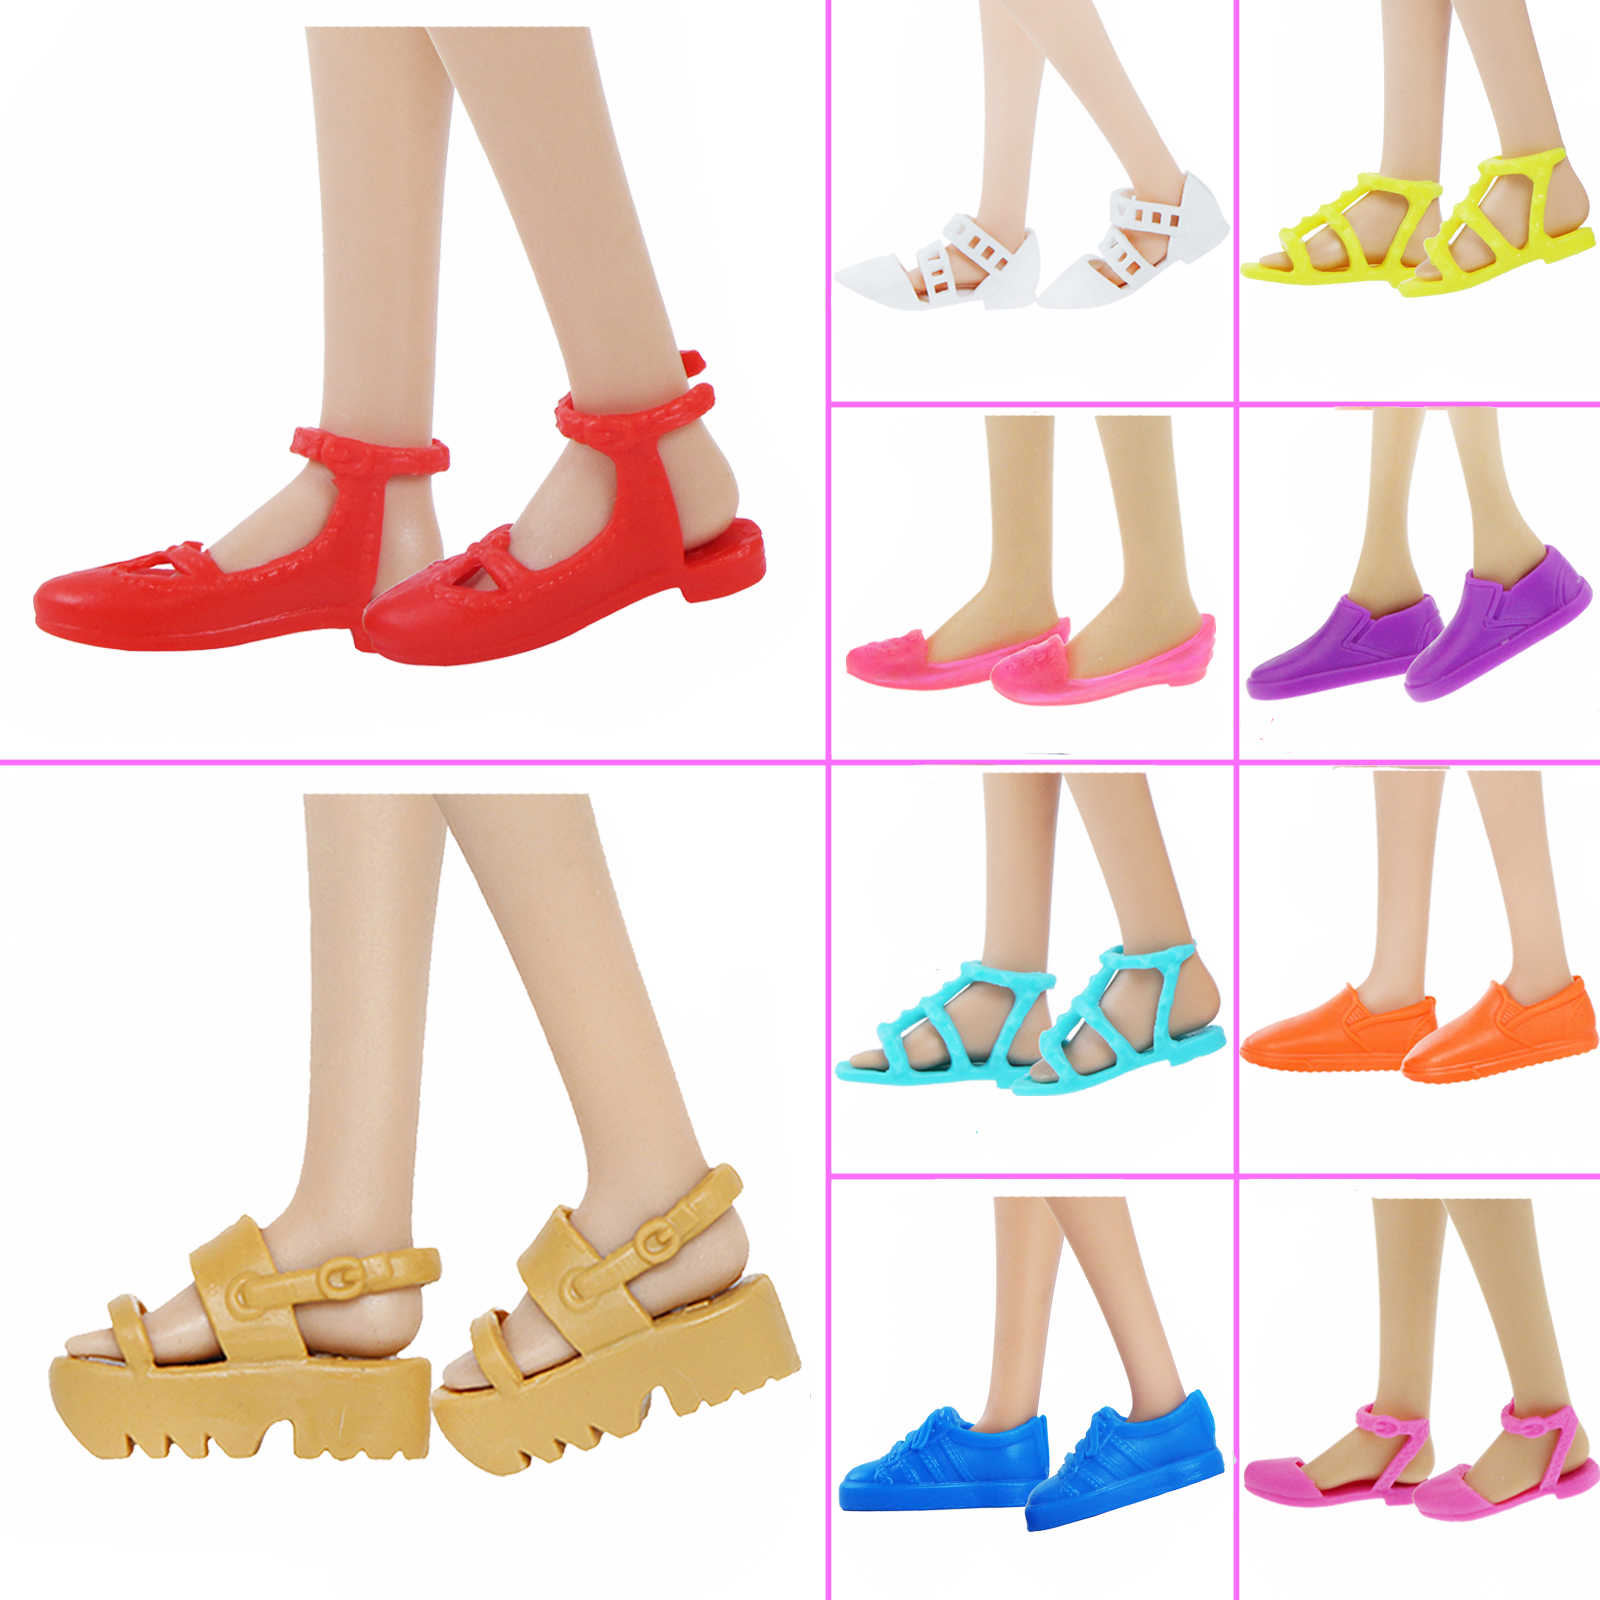 4Pairs Fashion Sneackers For Doll Mini Toy for  Doll Shoes Accessories  JnNMCA